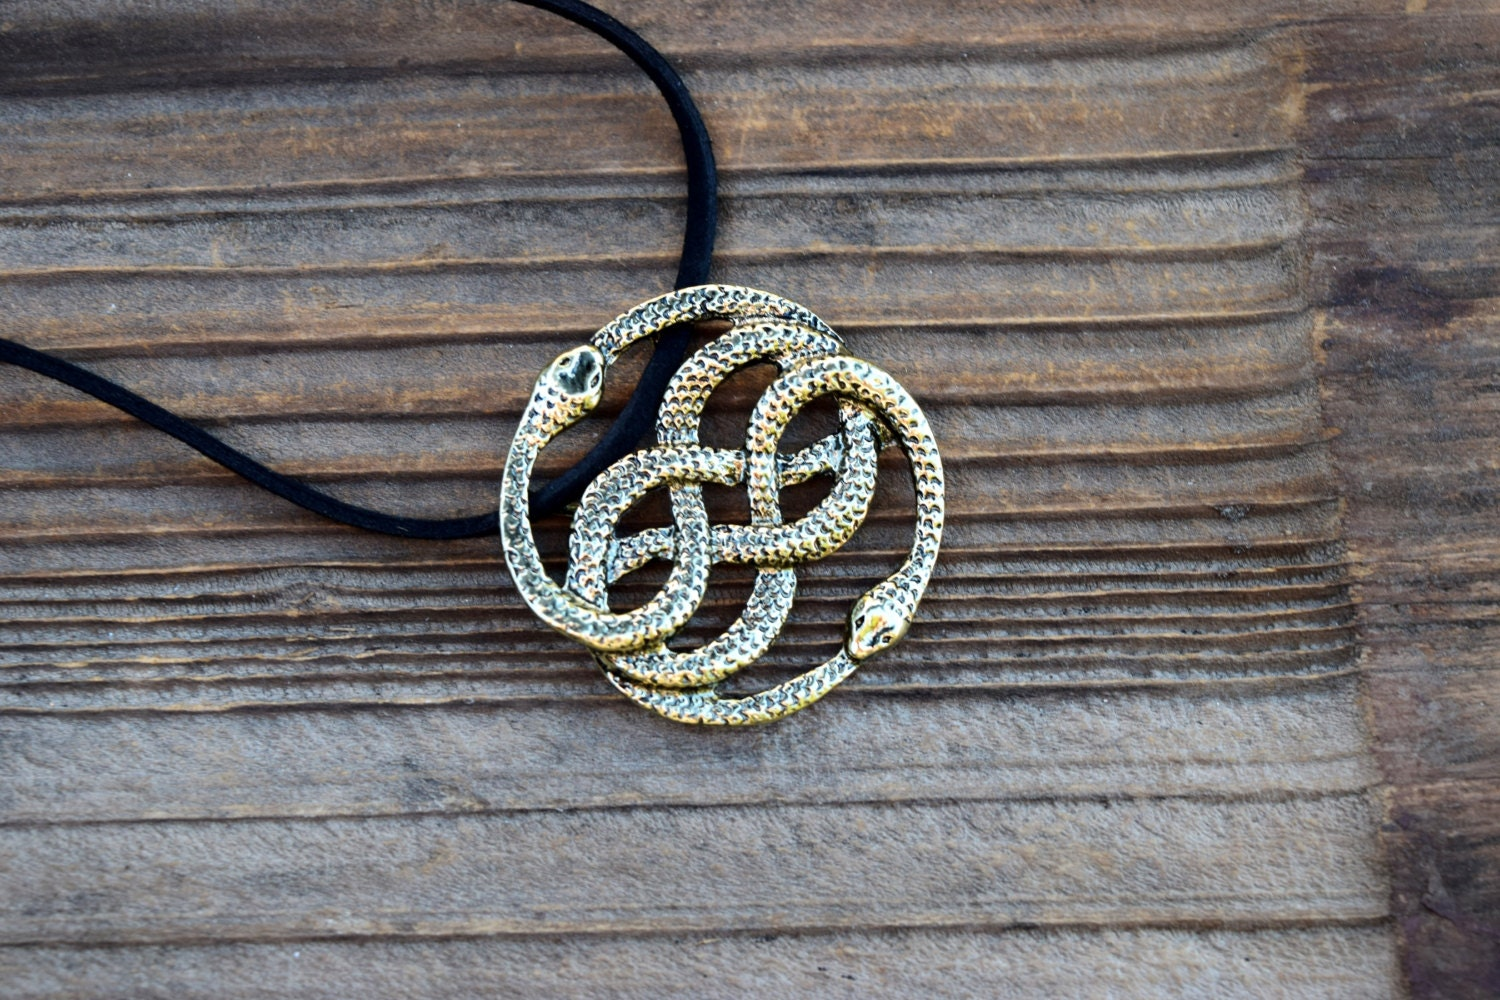 Neverending story antique brass necklace auryn necklace leather fishes give kisses mozeypictures Choice Image